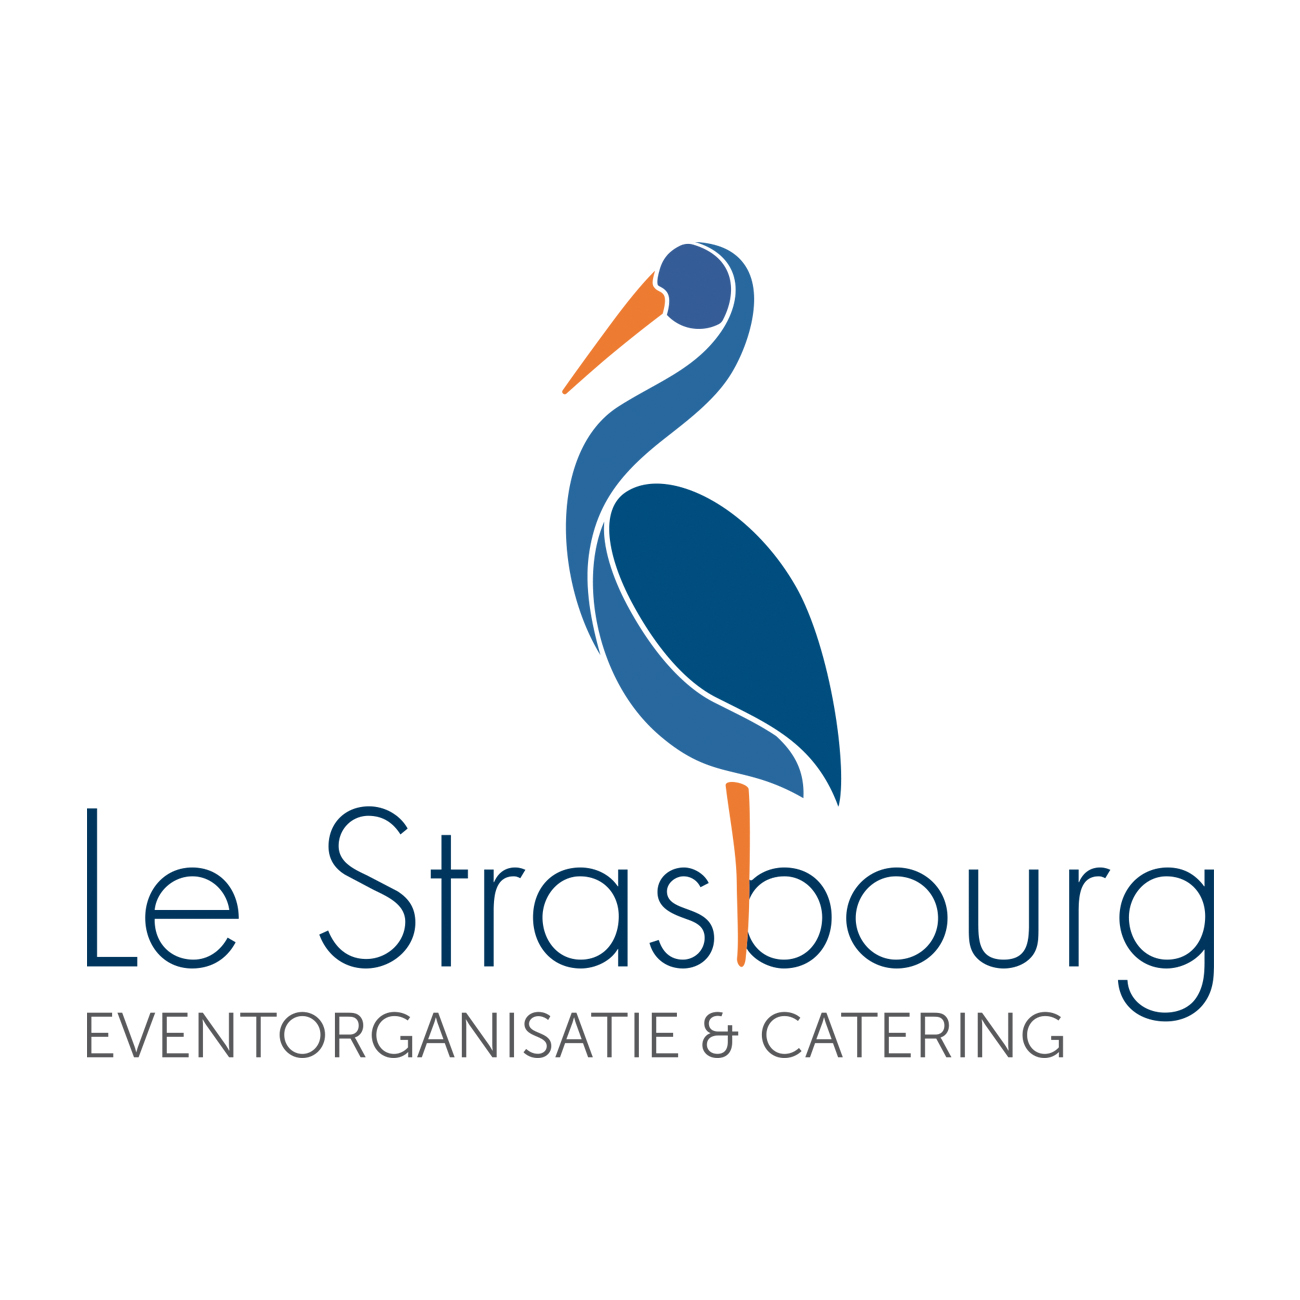 Le Strabourg